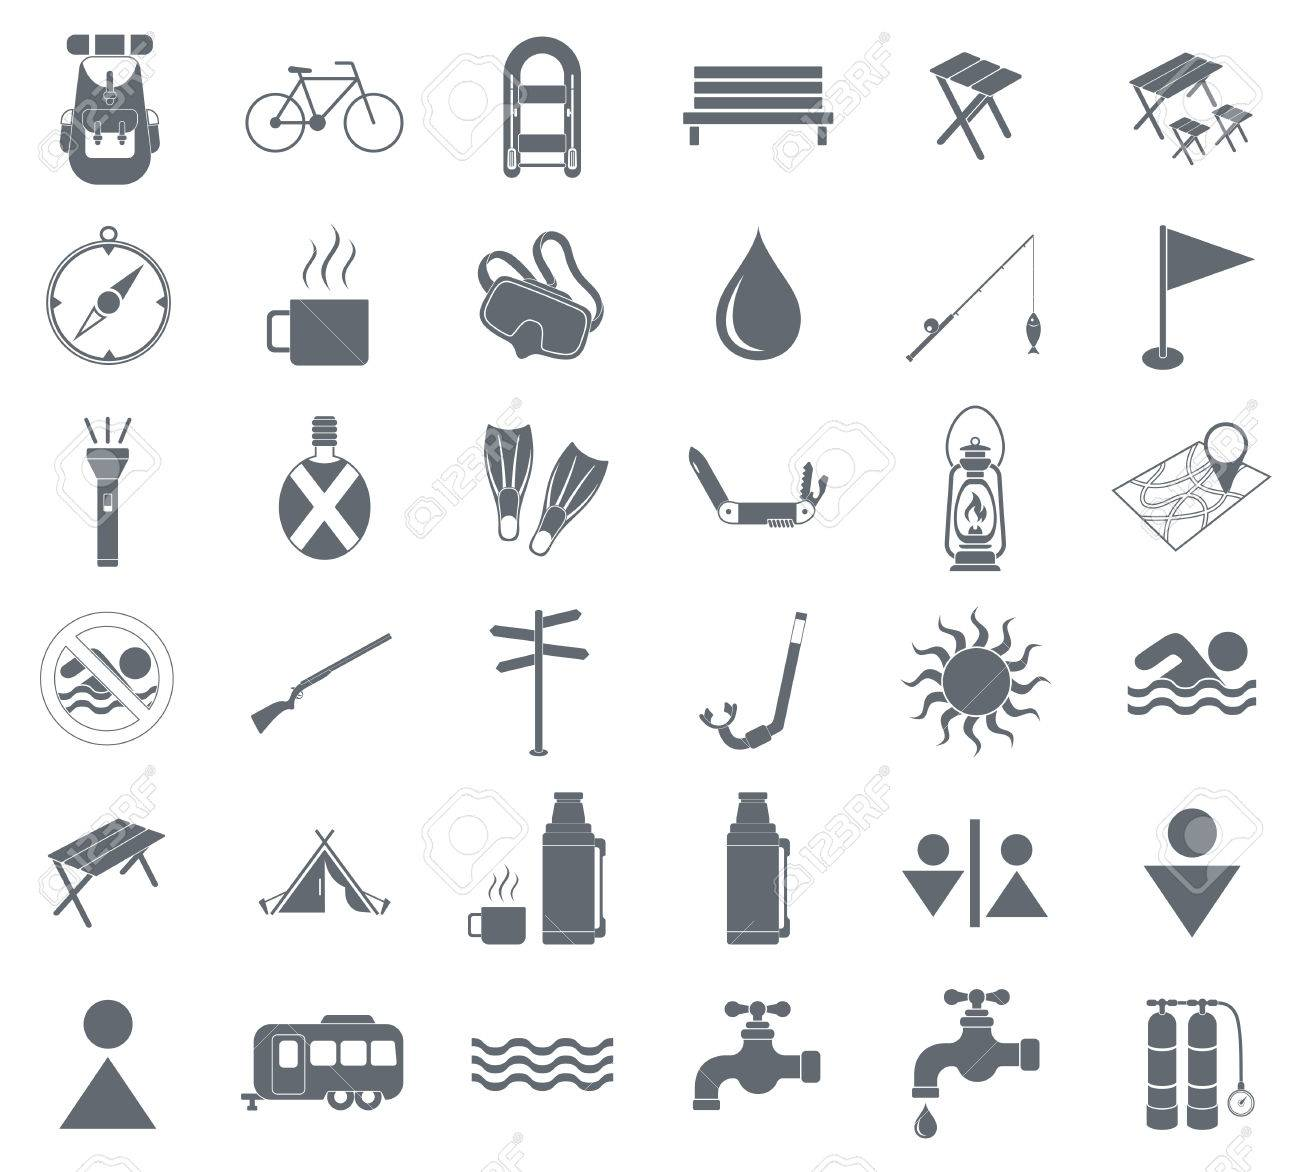 Set Of Camping Equipment Pictograms Vector Illustration Stock